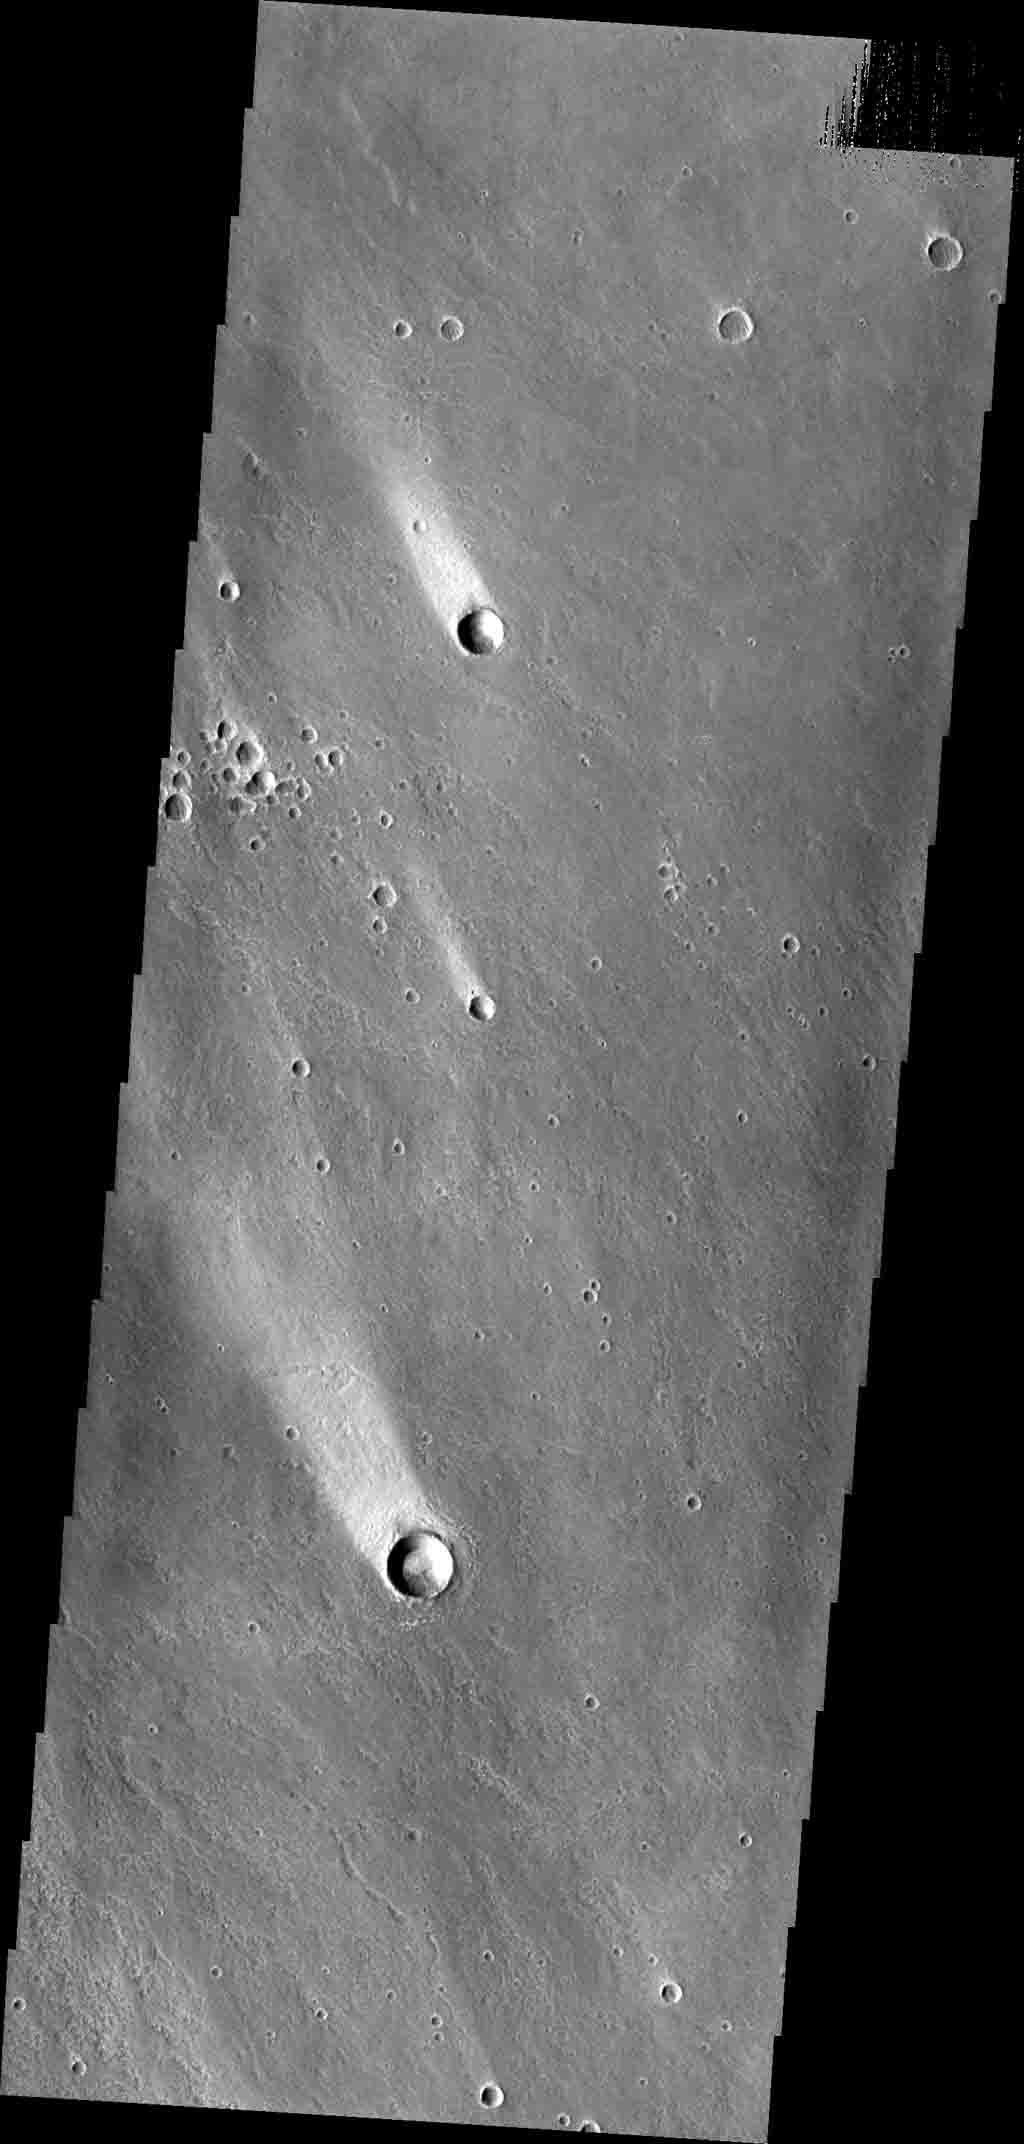 These windstreaks, located north of Olympus Mons, indicate winds from the south-southeast. This image is from NASA's 2001 Mars Odyssey spacecraft.